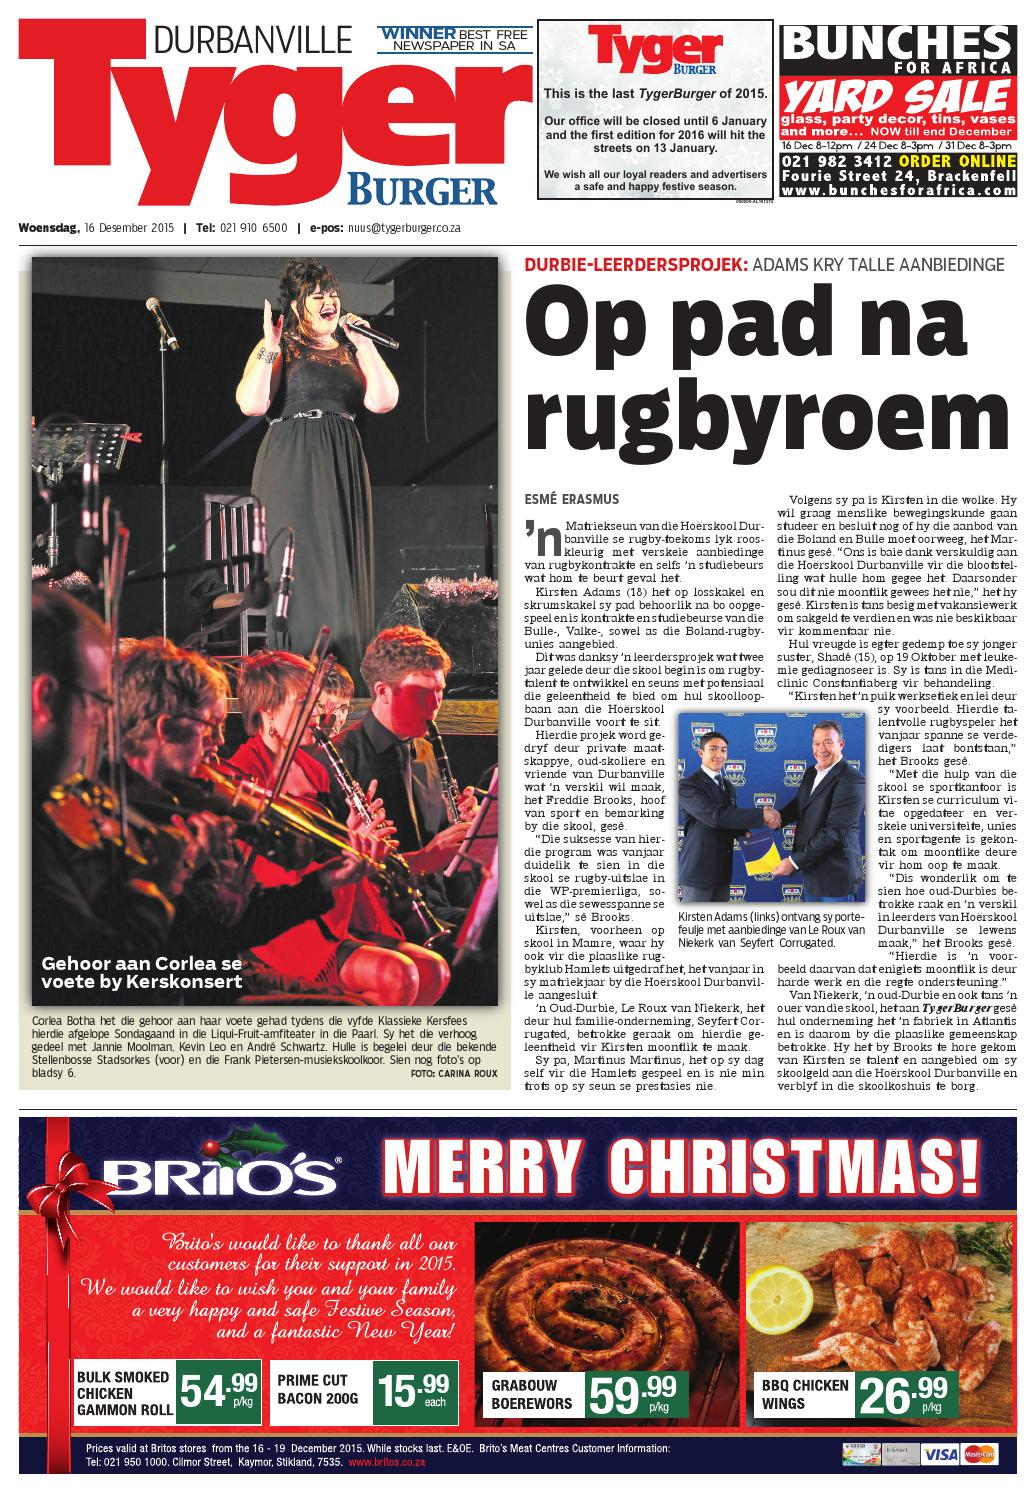 Tygerburger durbanville 20151216 by tygerburger newspaper issuu ccuart Images